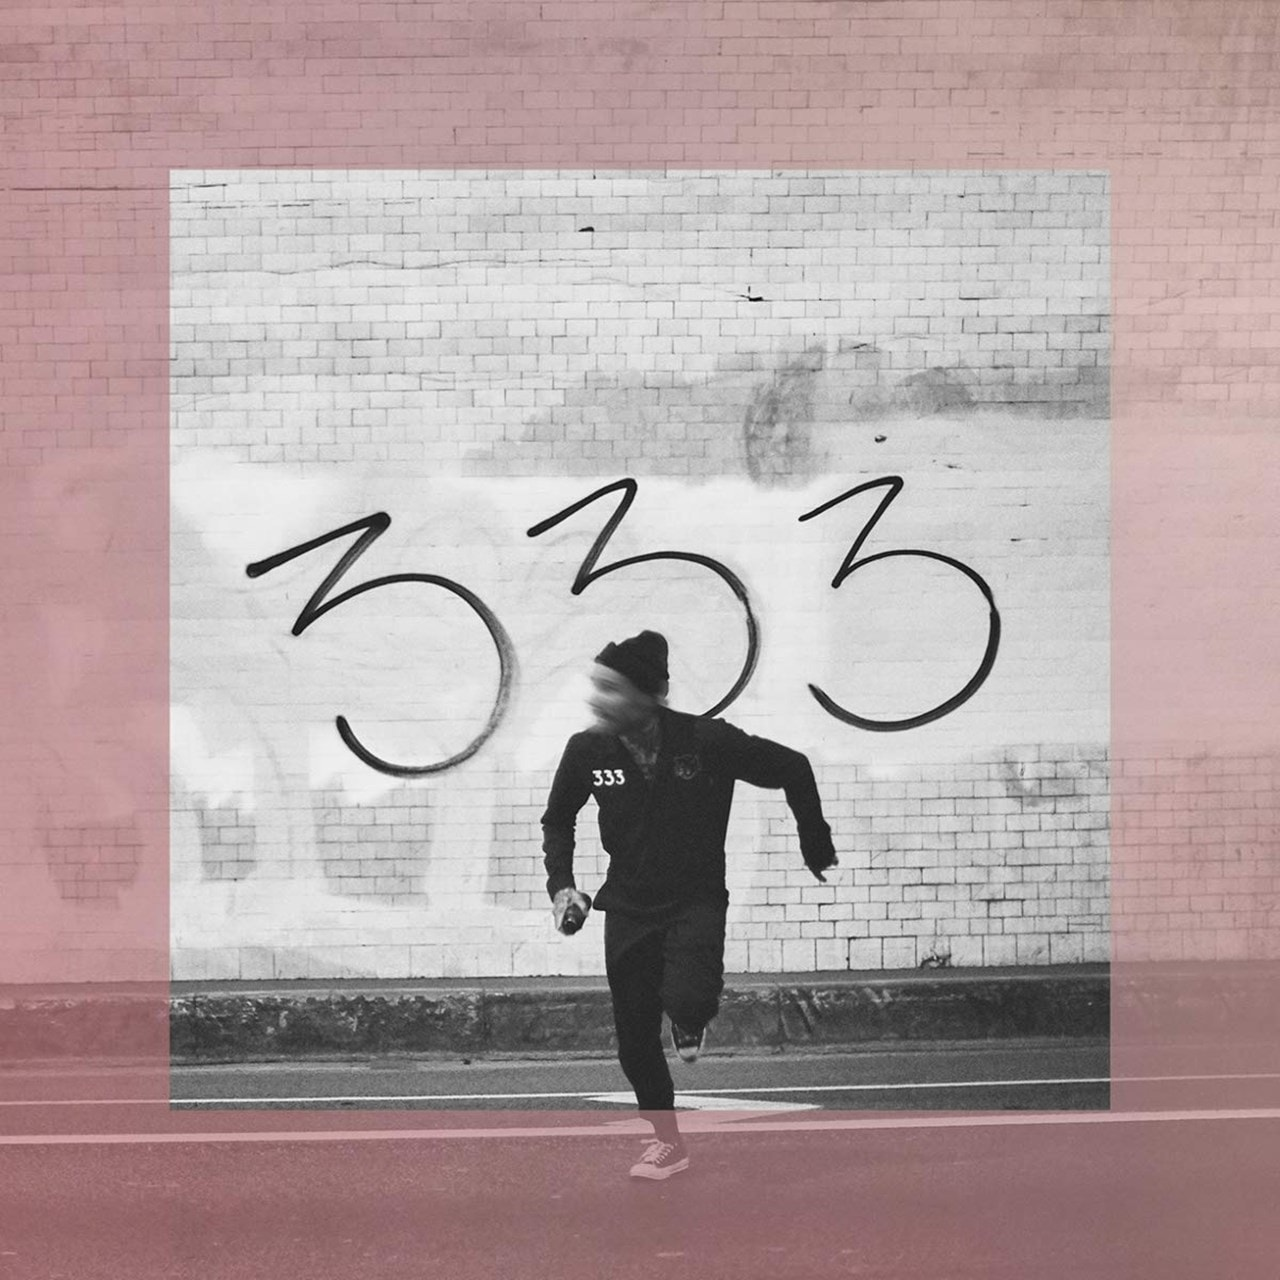 Strength in Numb333rs - 1